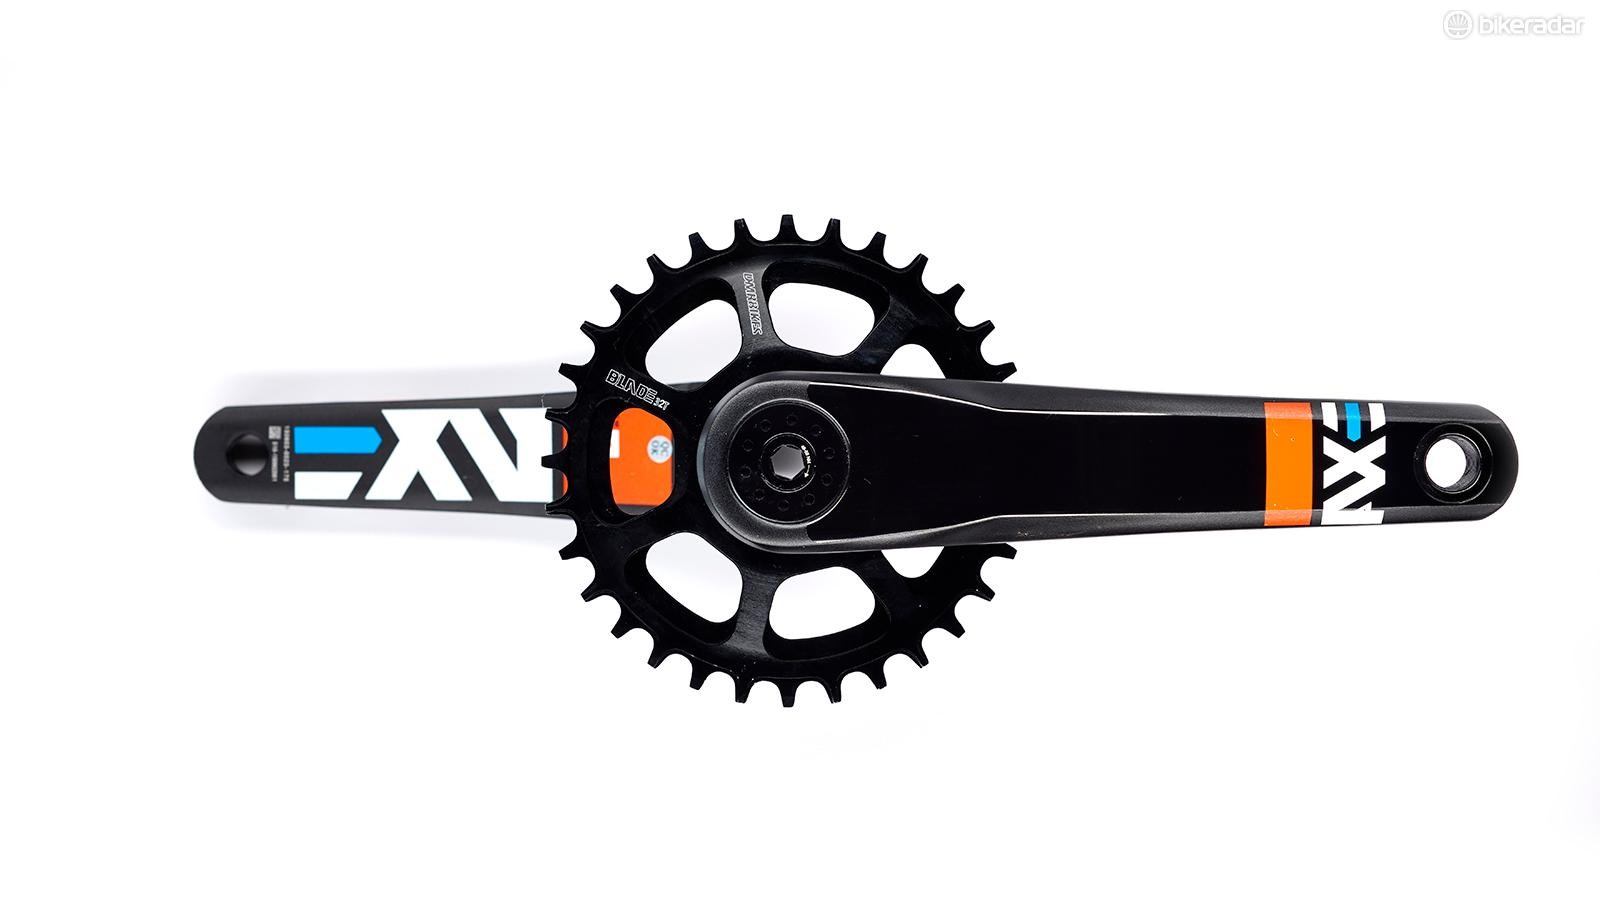 DMR's Axe crankset blew away our testers